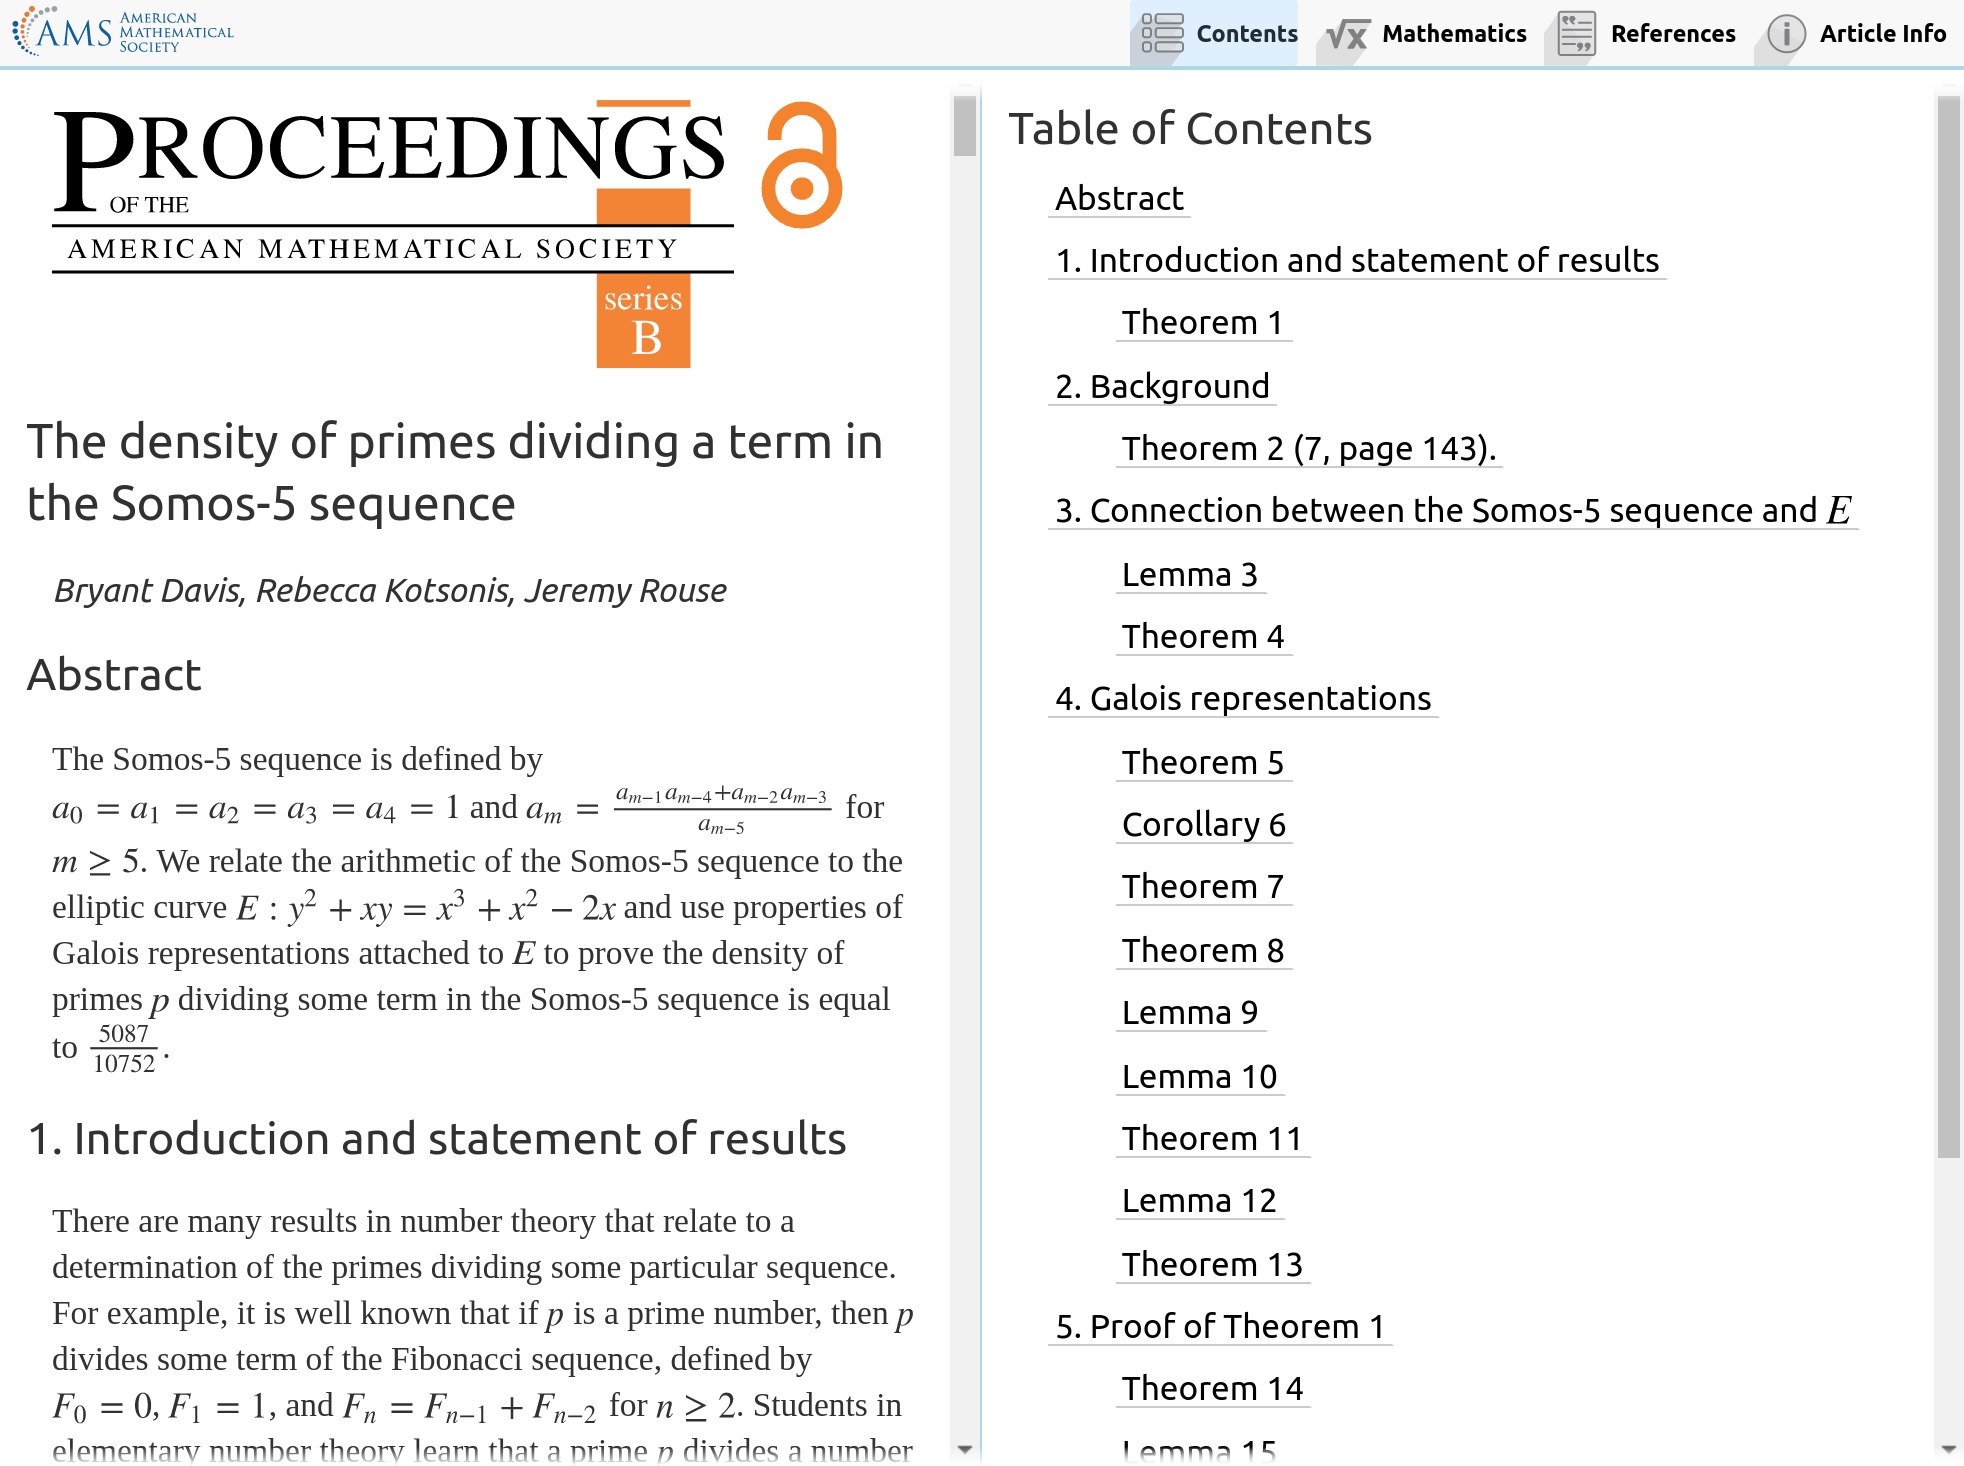 two-pane view of journal article in desktop browser